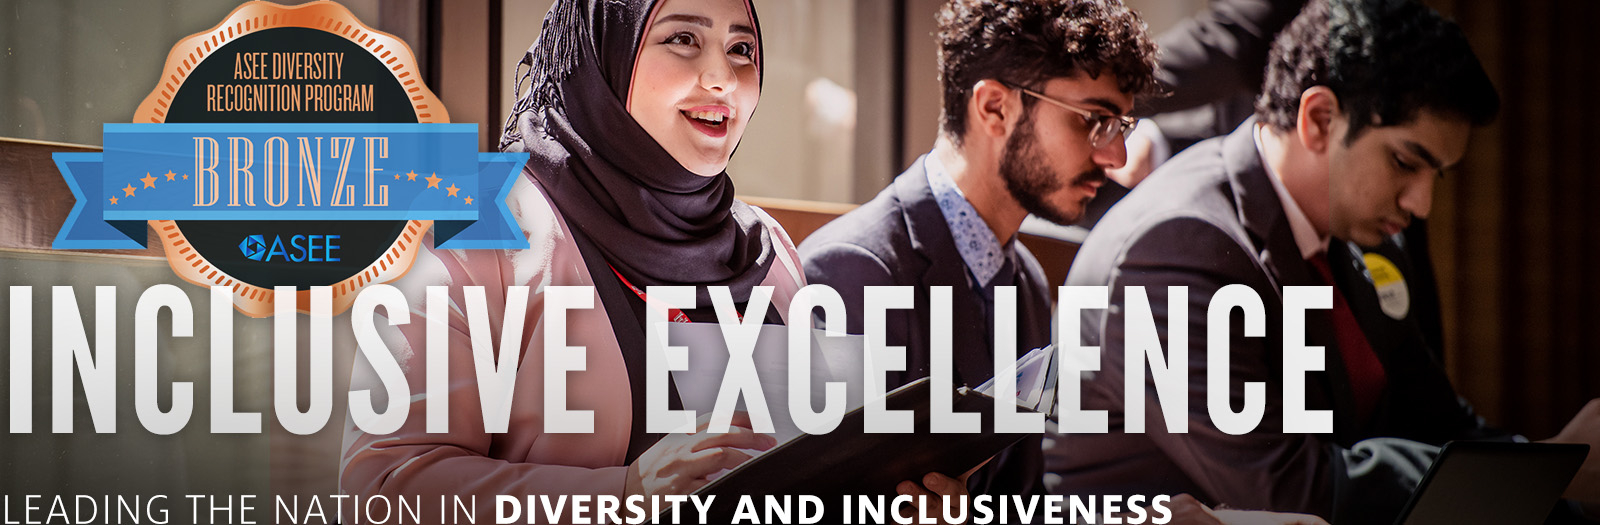 UH Cullen College of Engineering Recognized for Achievements in Diversity by ASEE